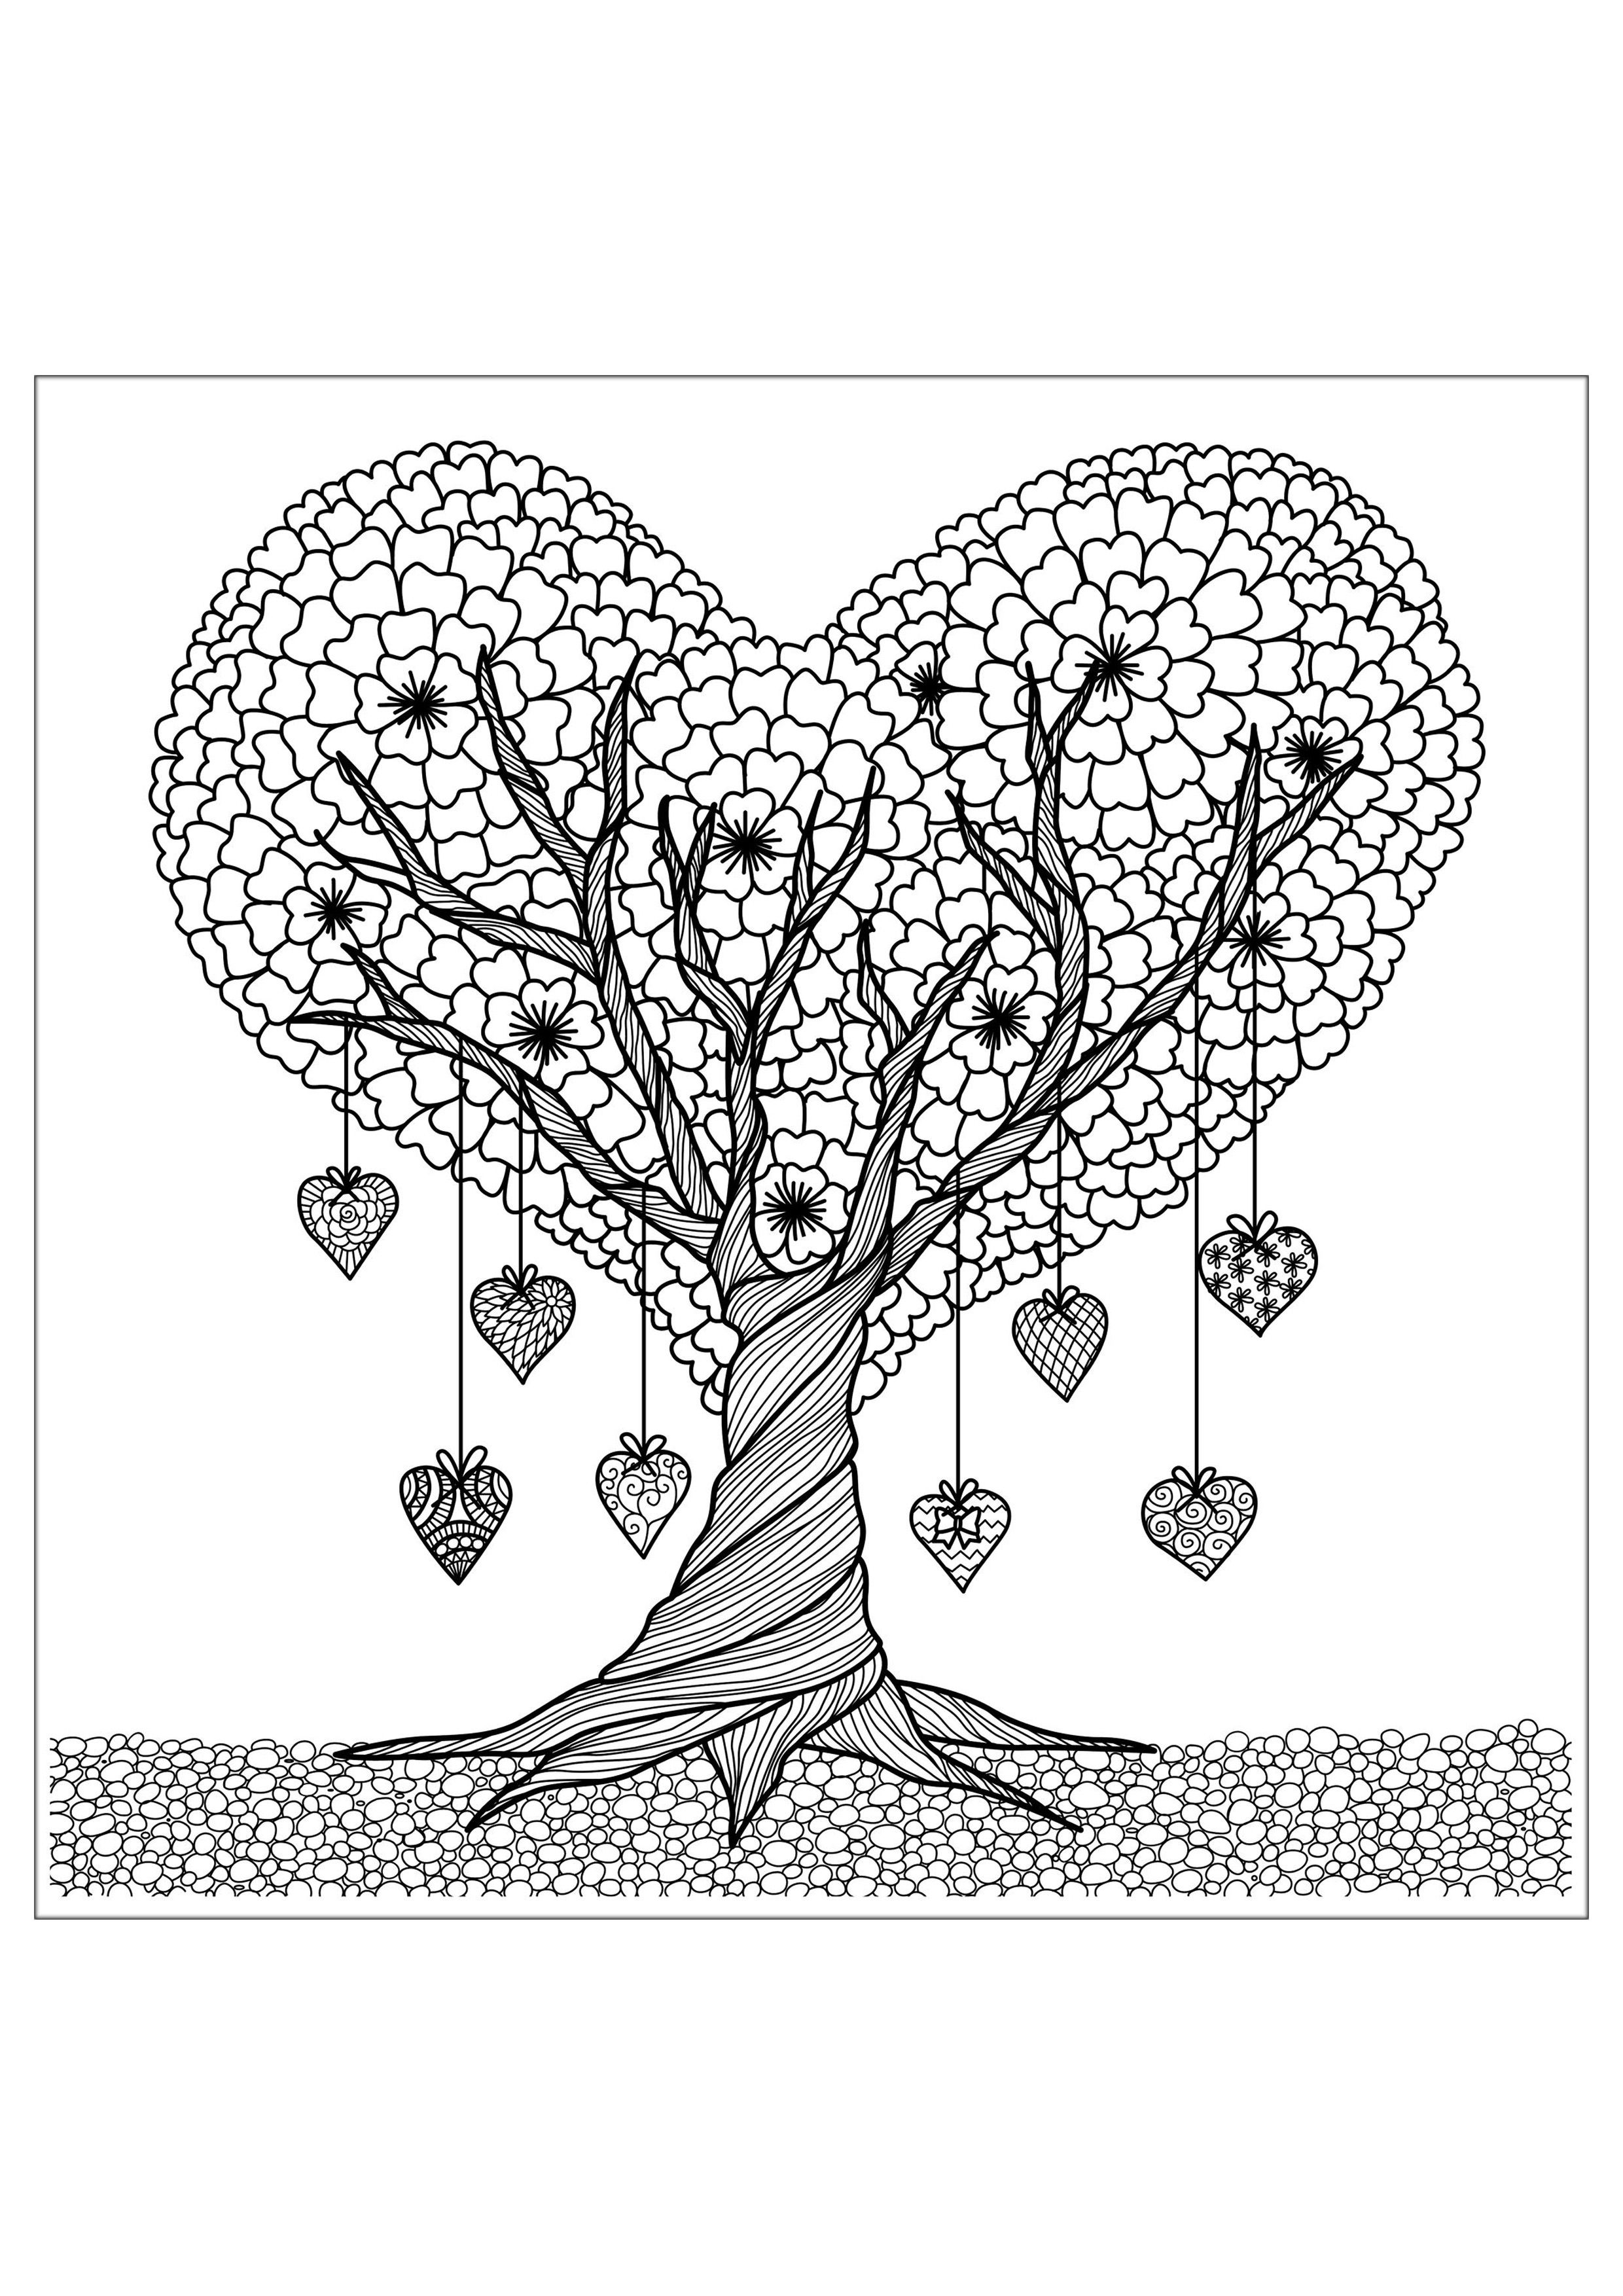 Coloring sheets of fruit trees - Lots Of Awesome Coloring Pages For Us Adults Discover Our Heart Tree From The Gallery Flowers And Vegetation Artist Bimdeedee